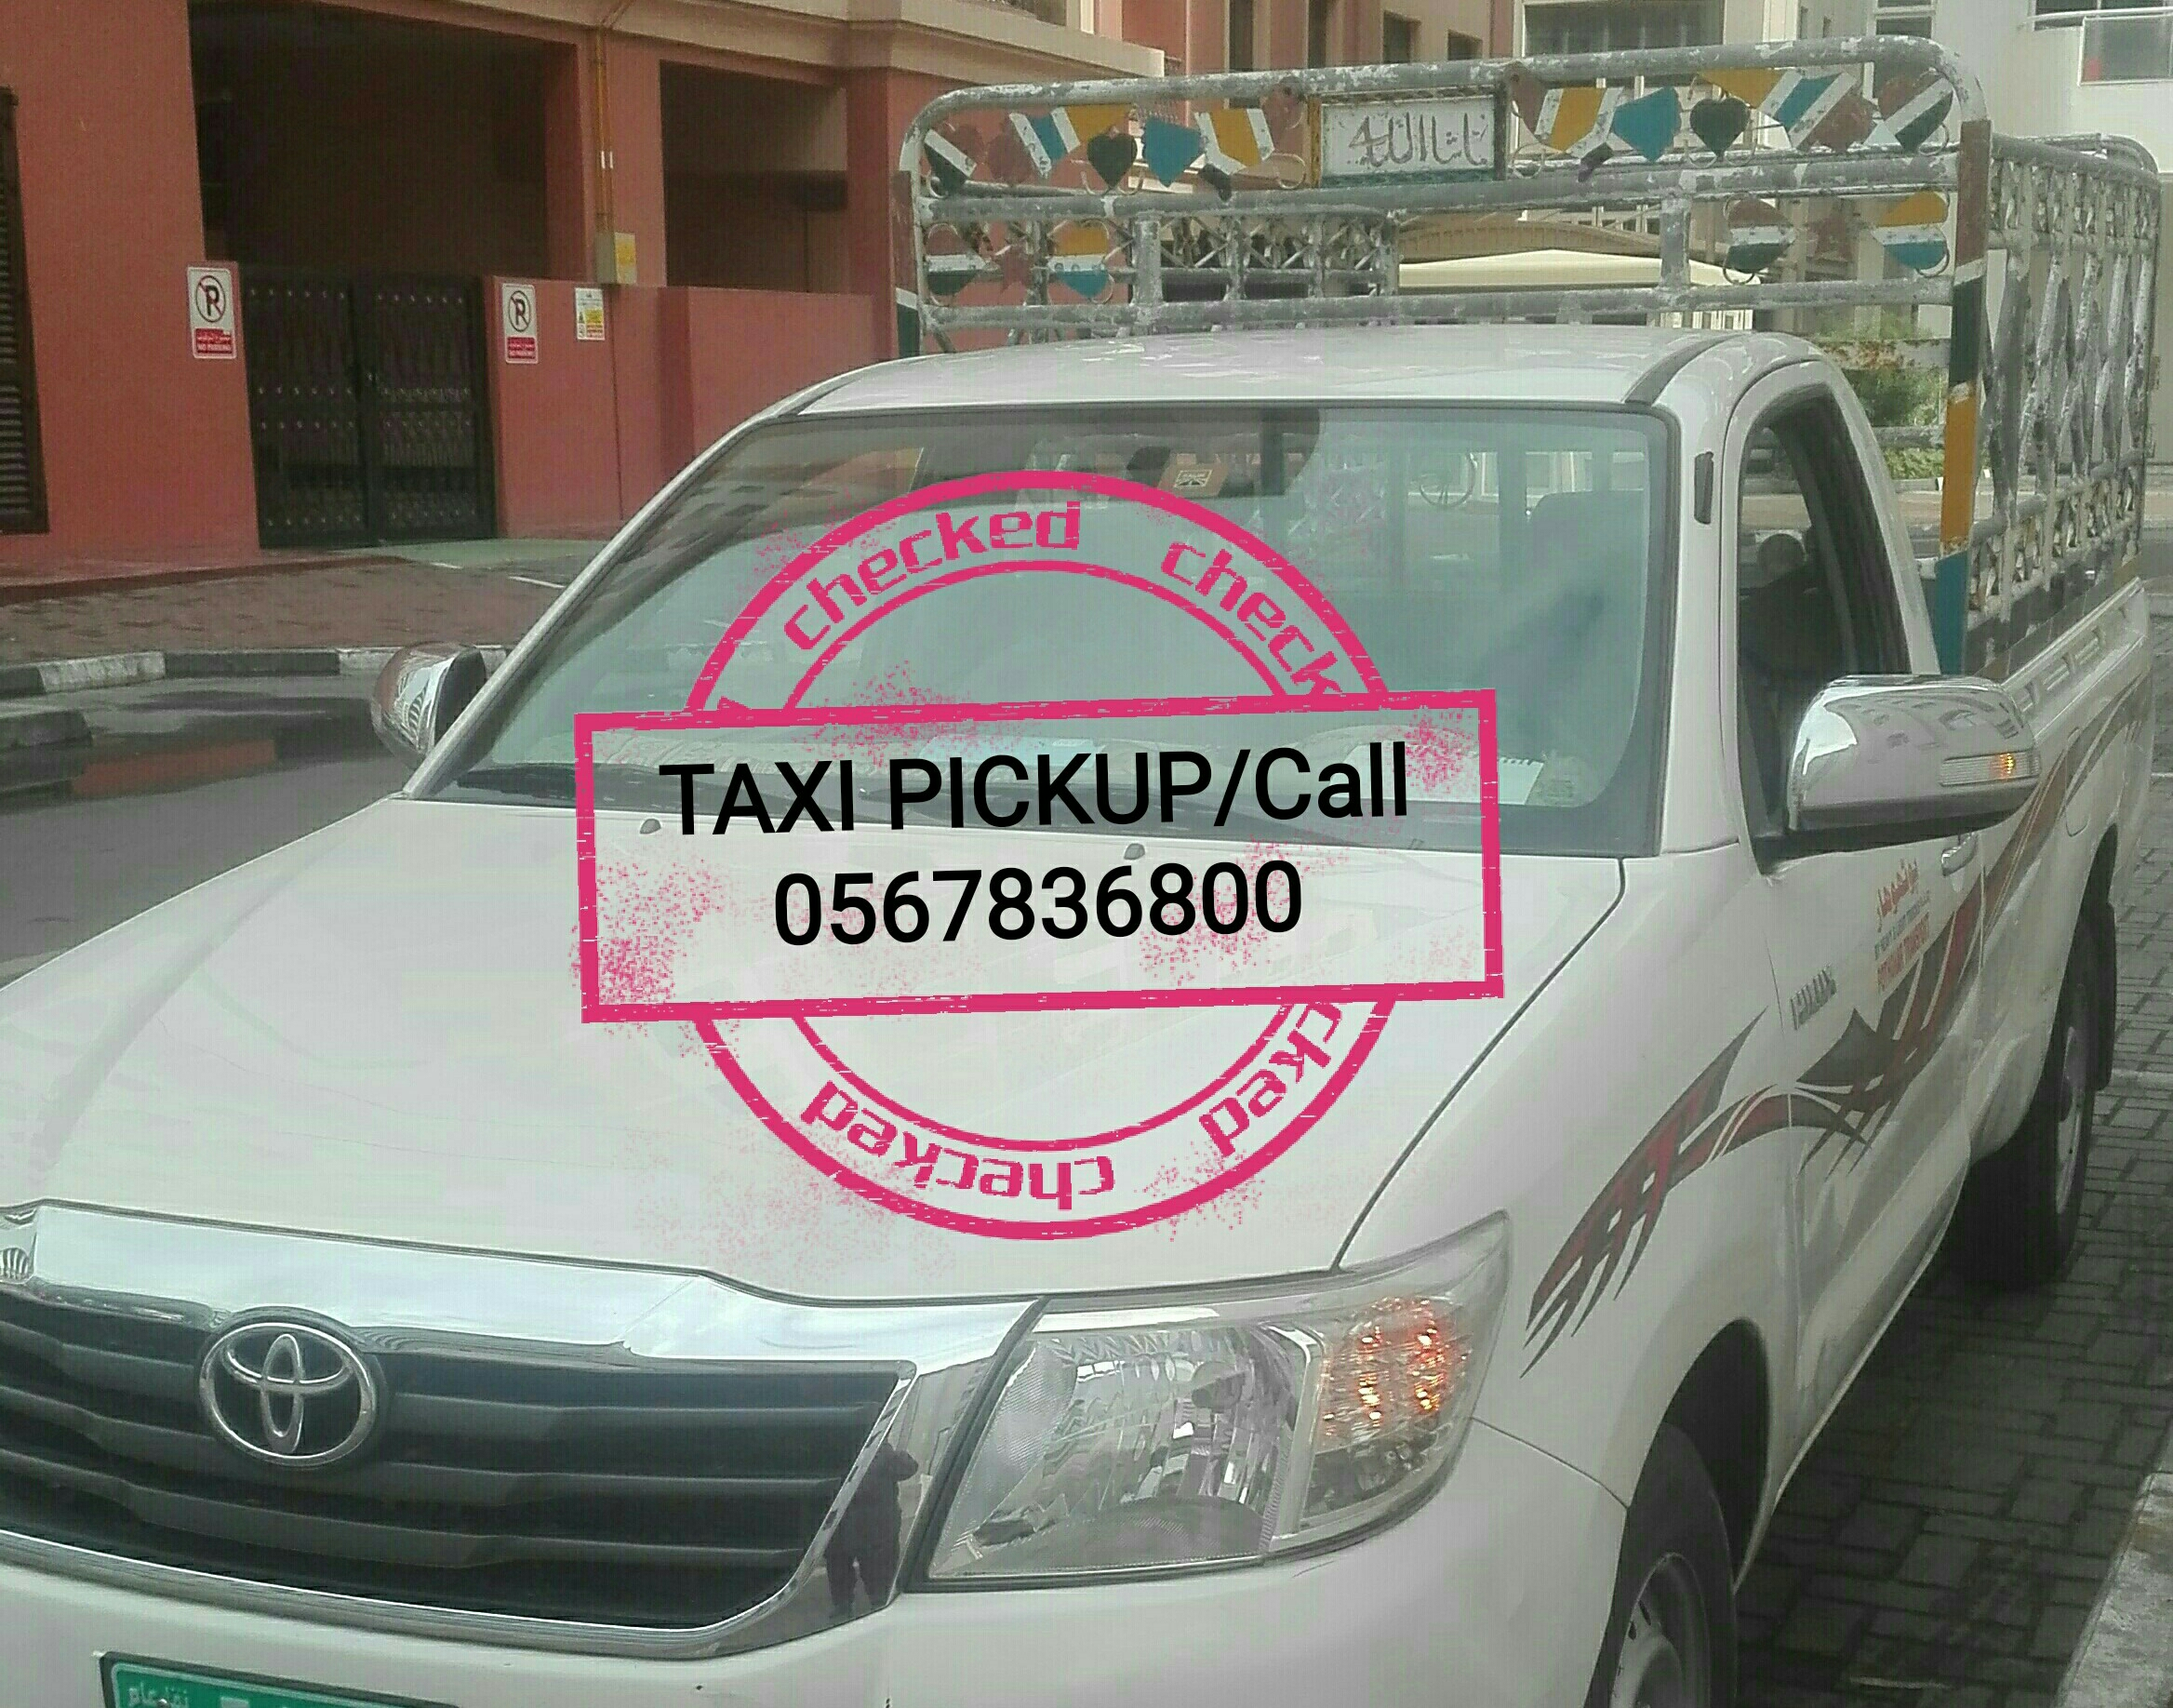 CALL FOR TAXI PICKUP/